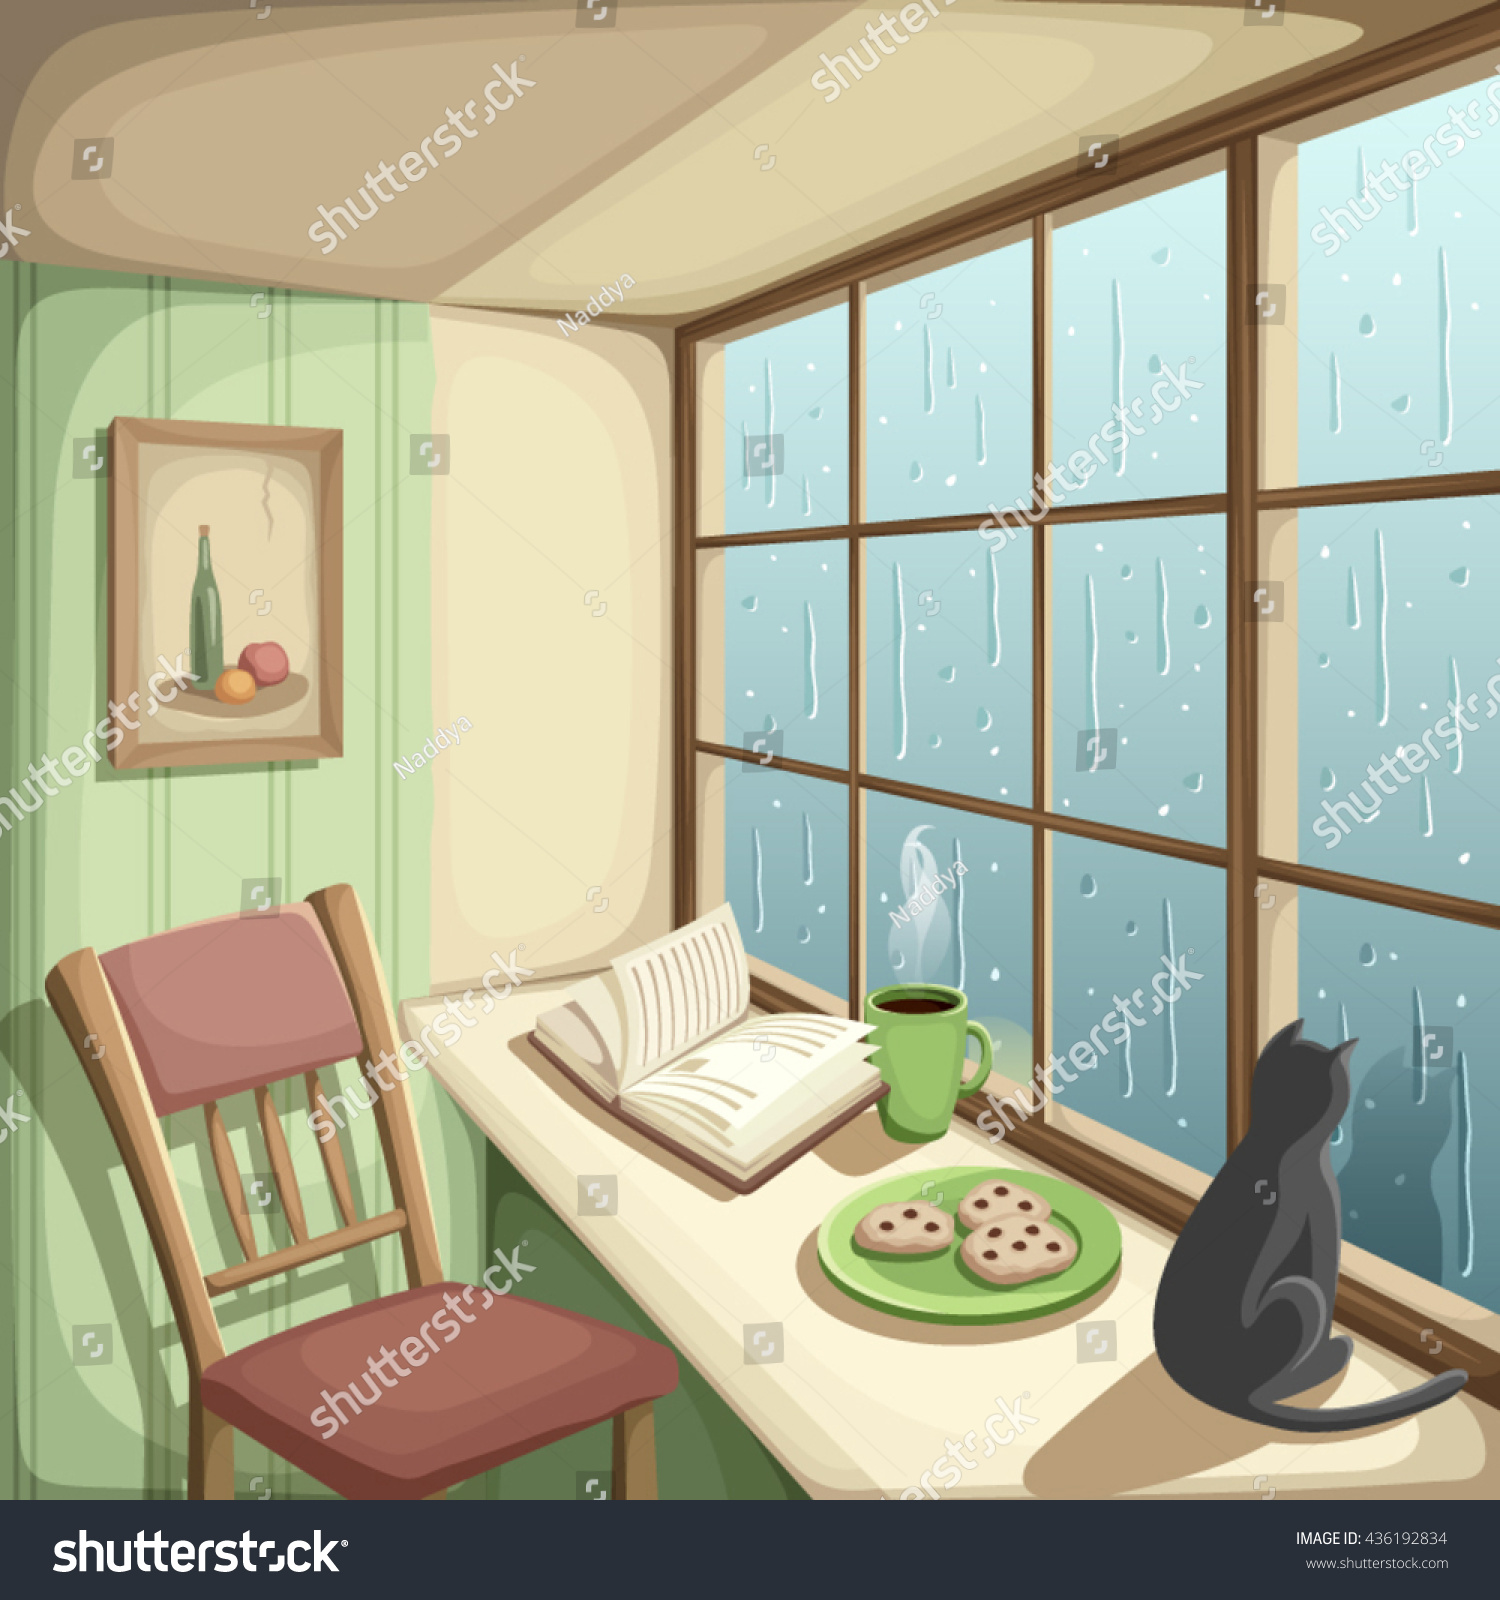 Cozy Living Room Vector Illustration: Vector Illustration Cozy Room Rain Outside Stock Vector